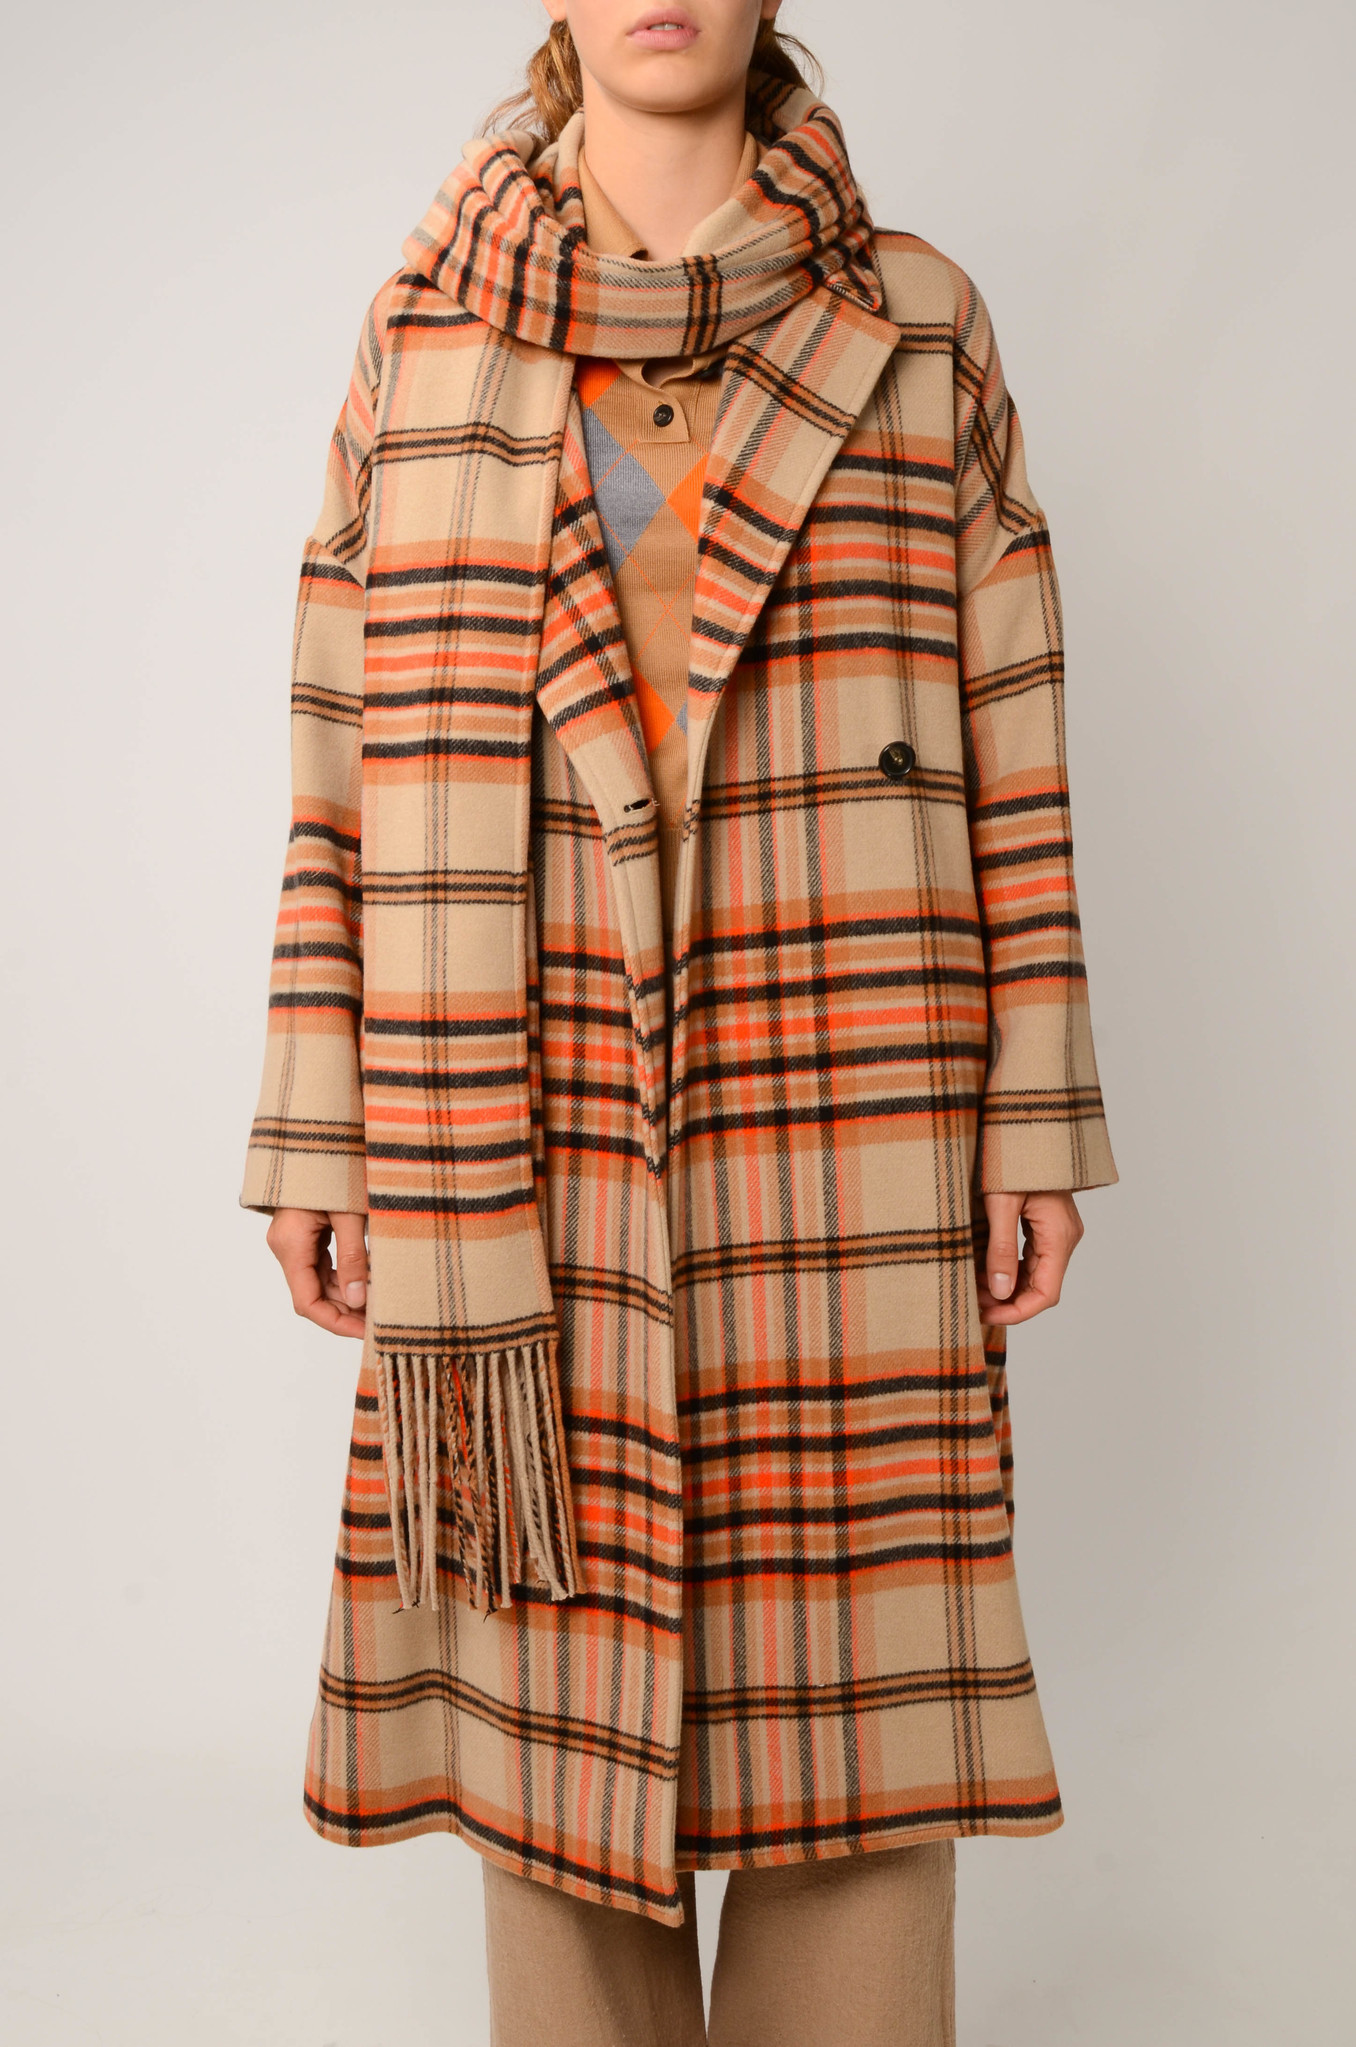 CHECKERED COAT IN ORANGE AND CAMEL-1